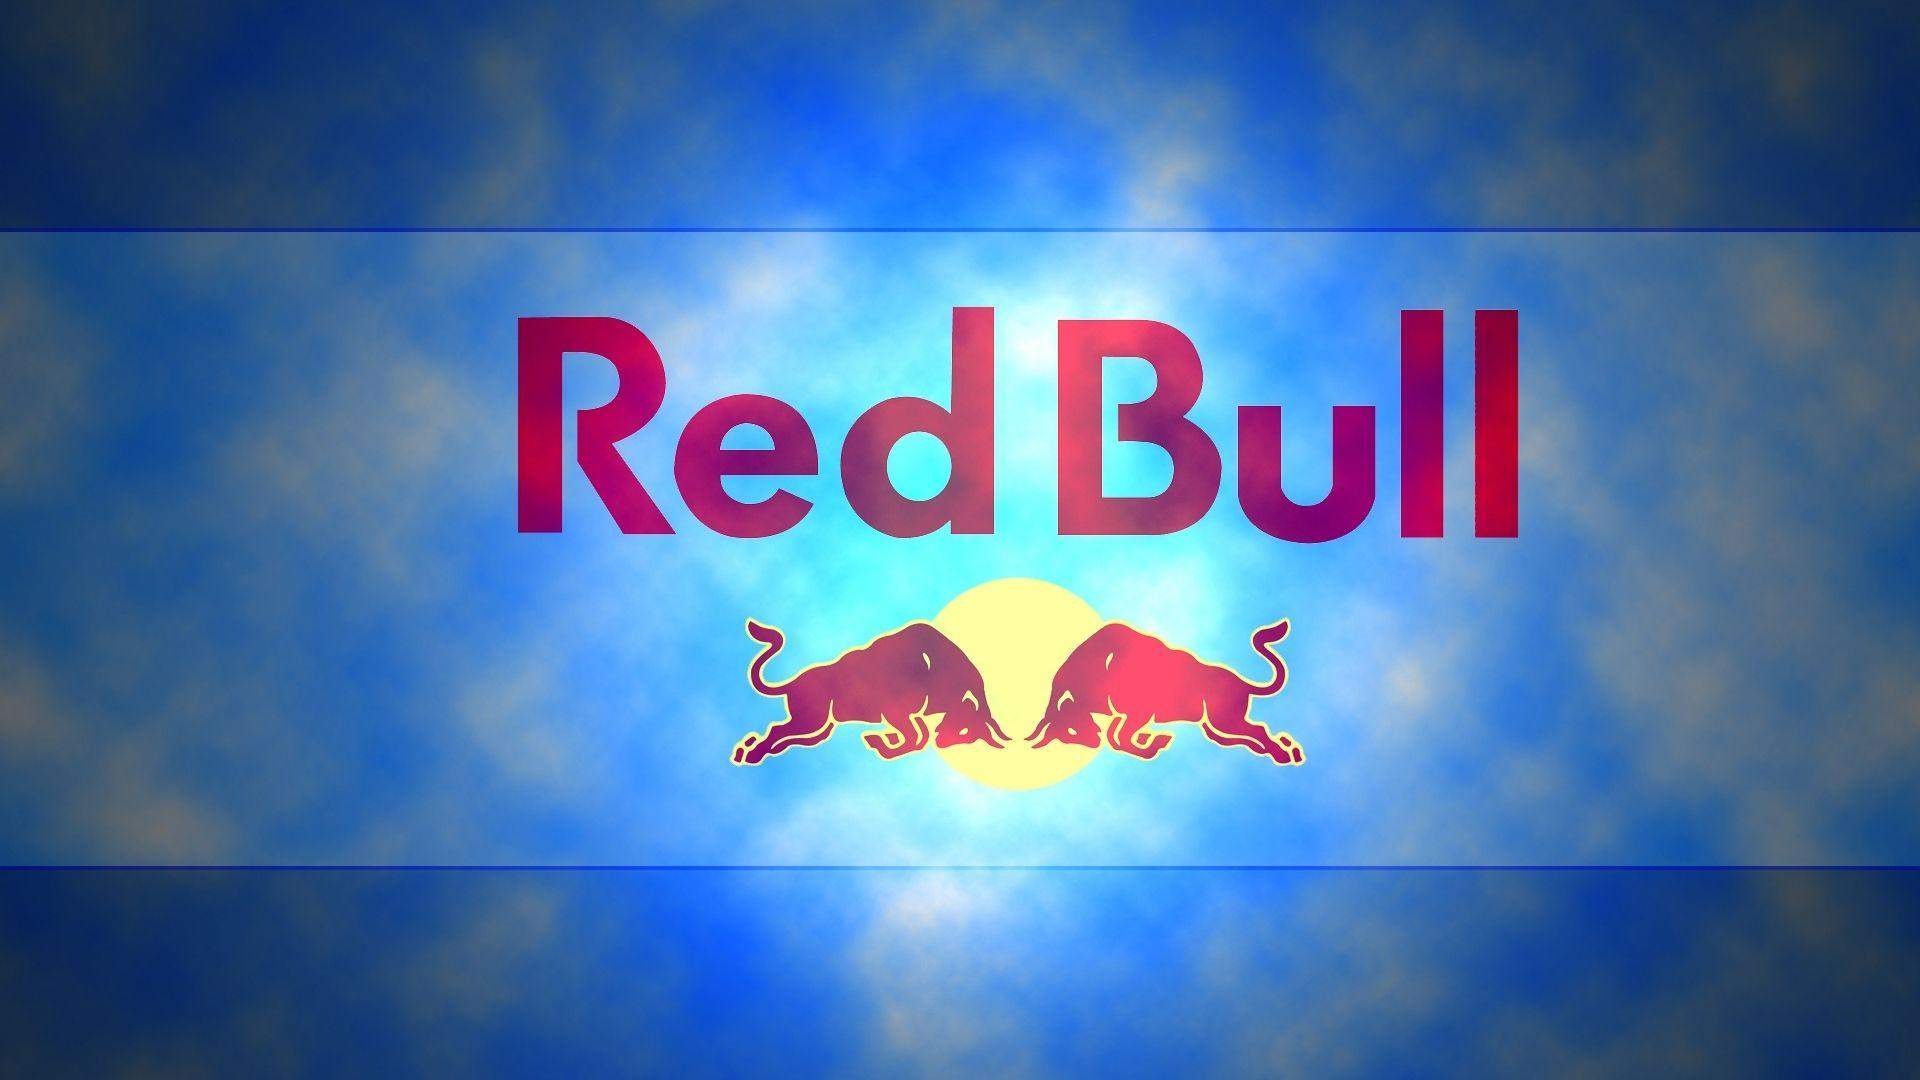 Red Bull Logo Wallpapers · Red Bull Wallpapers